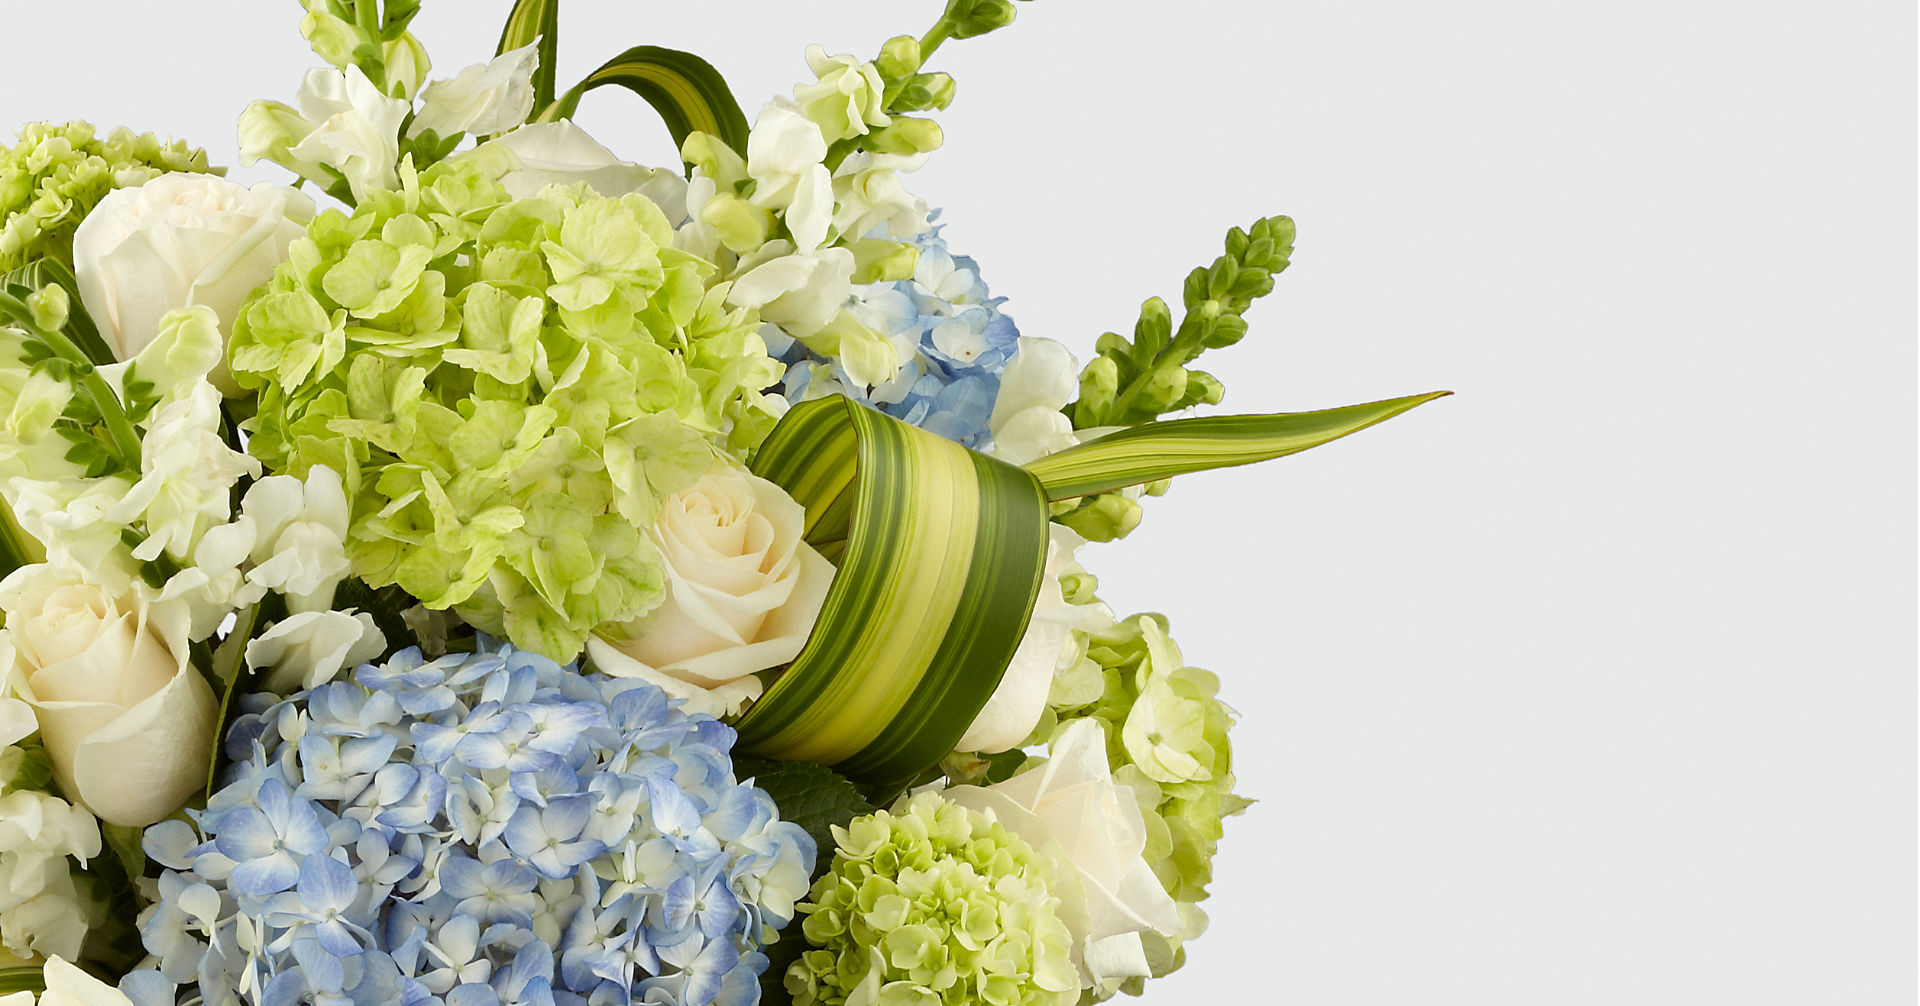 Superior Sights™ Luxury Bouquet - Blue & White - Image 3 Of 4